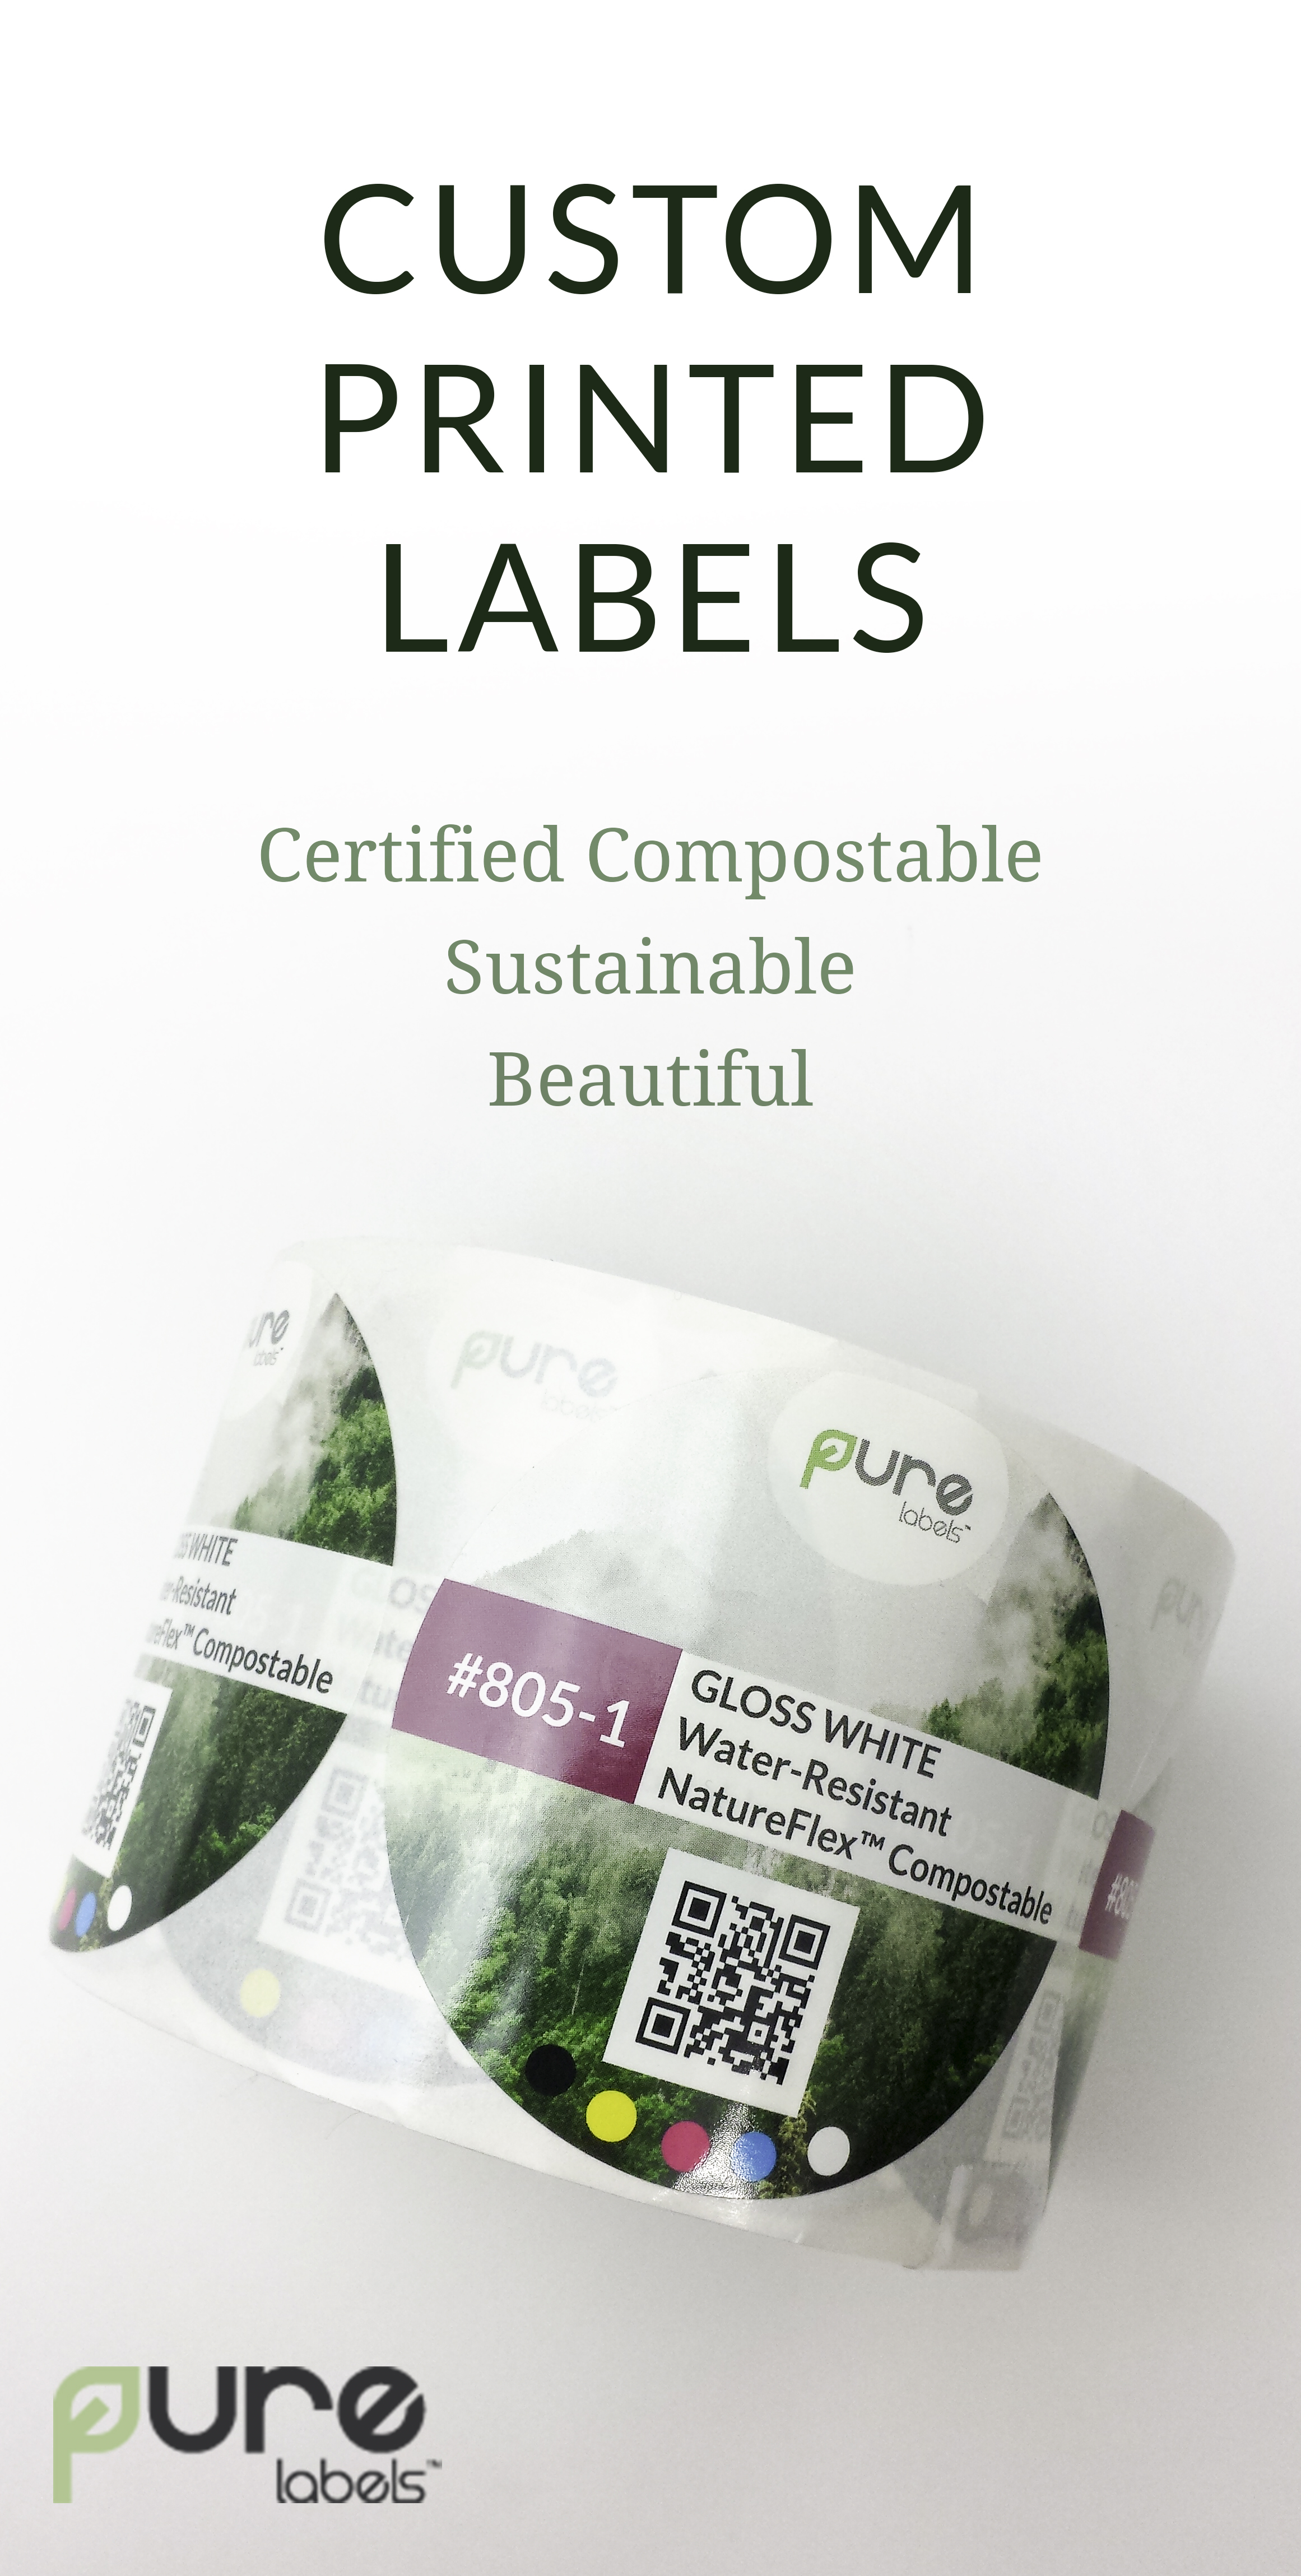 PURE Labels ecofriendly labels with compostable adhesive